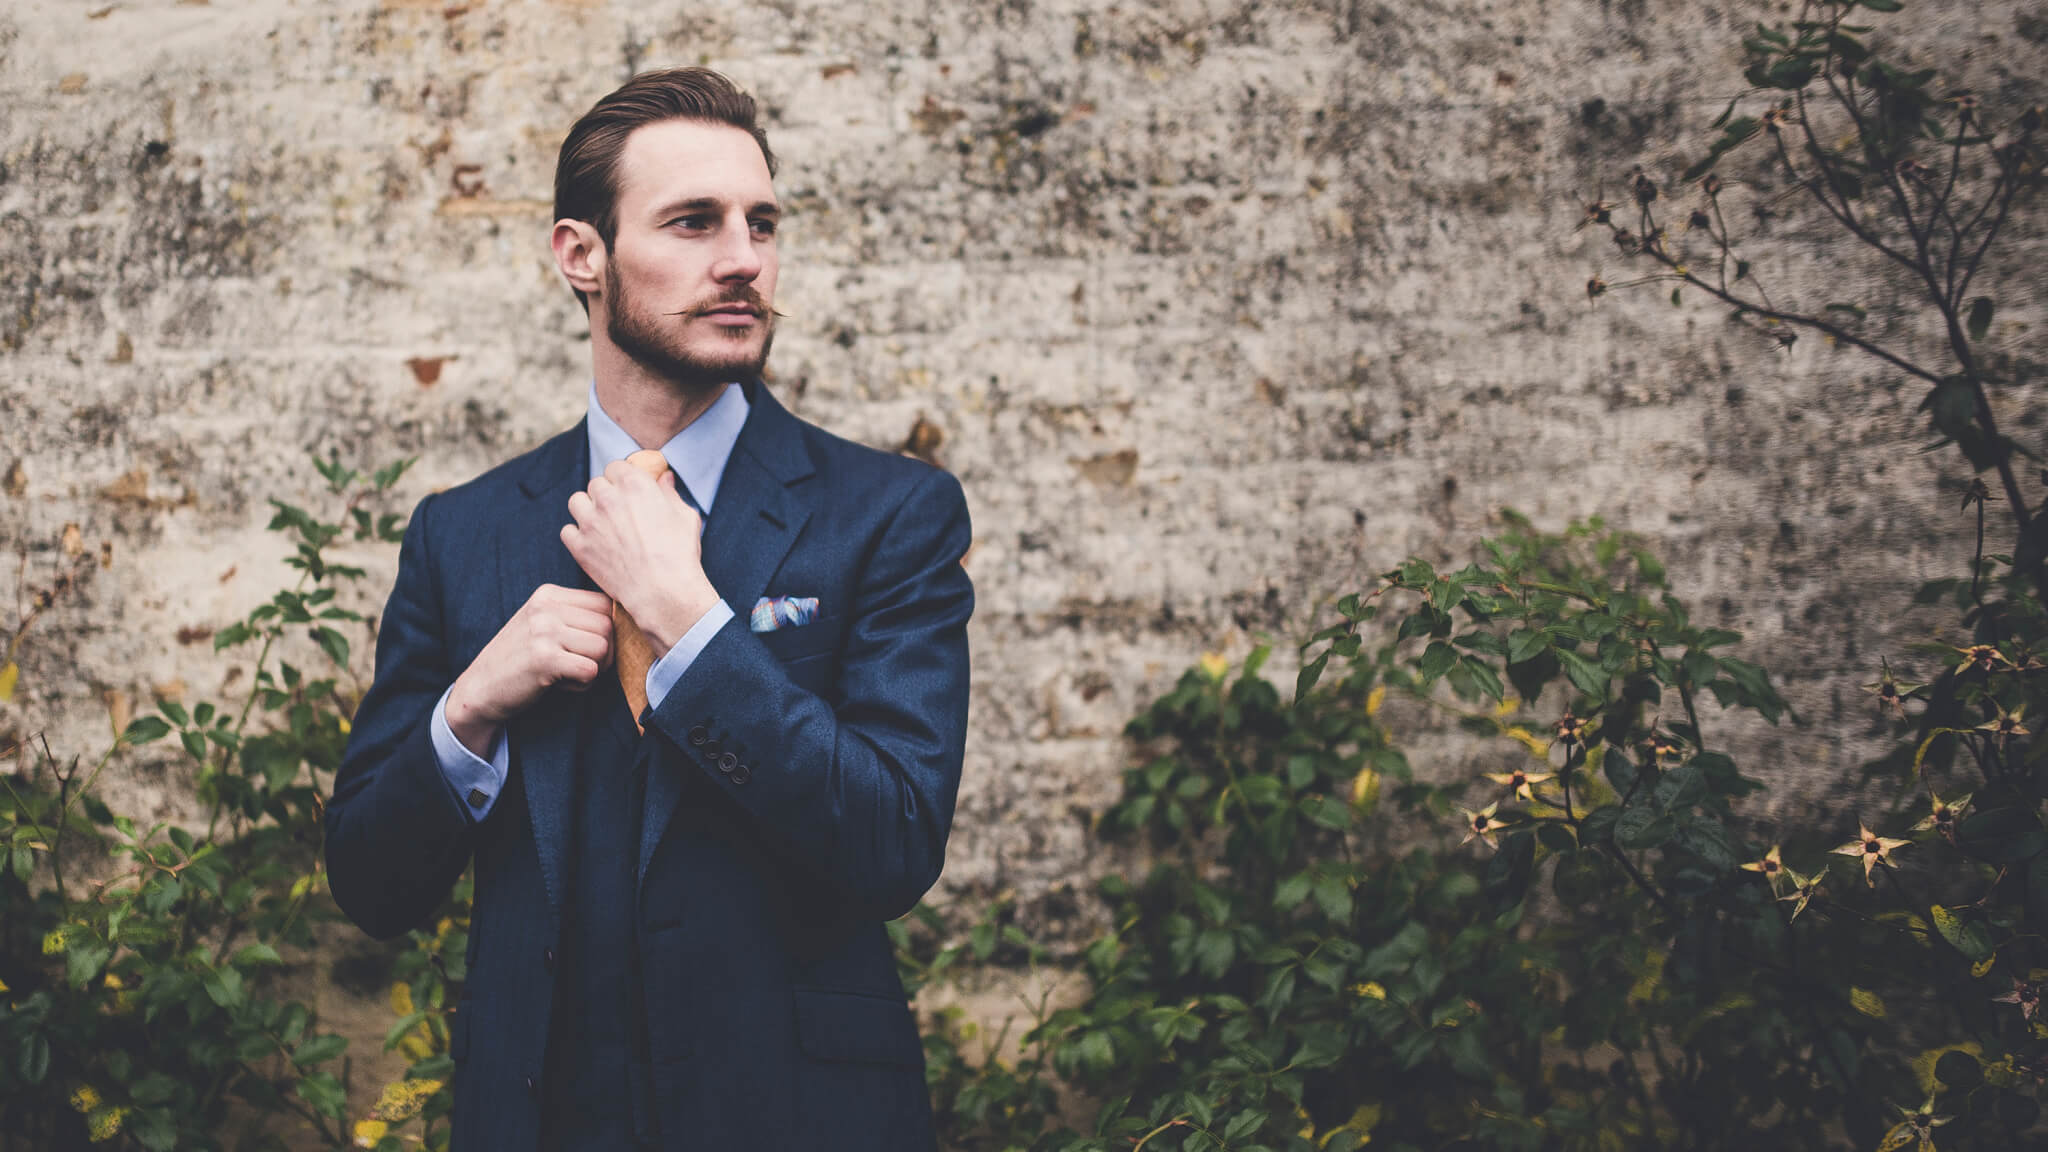 bespoke-suits-for-work